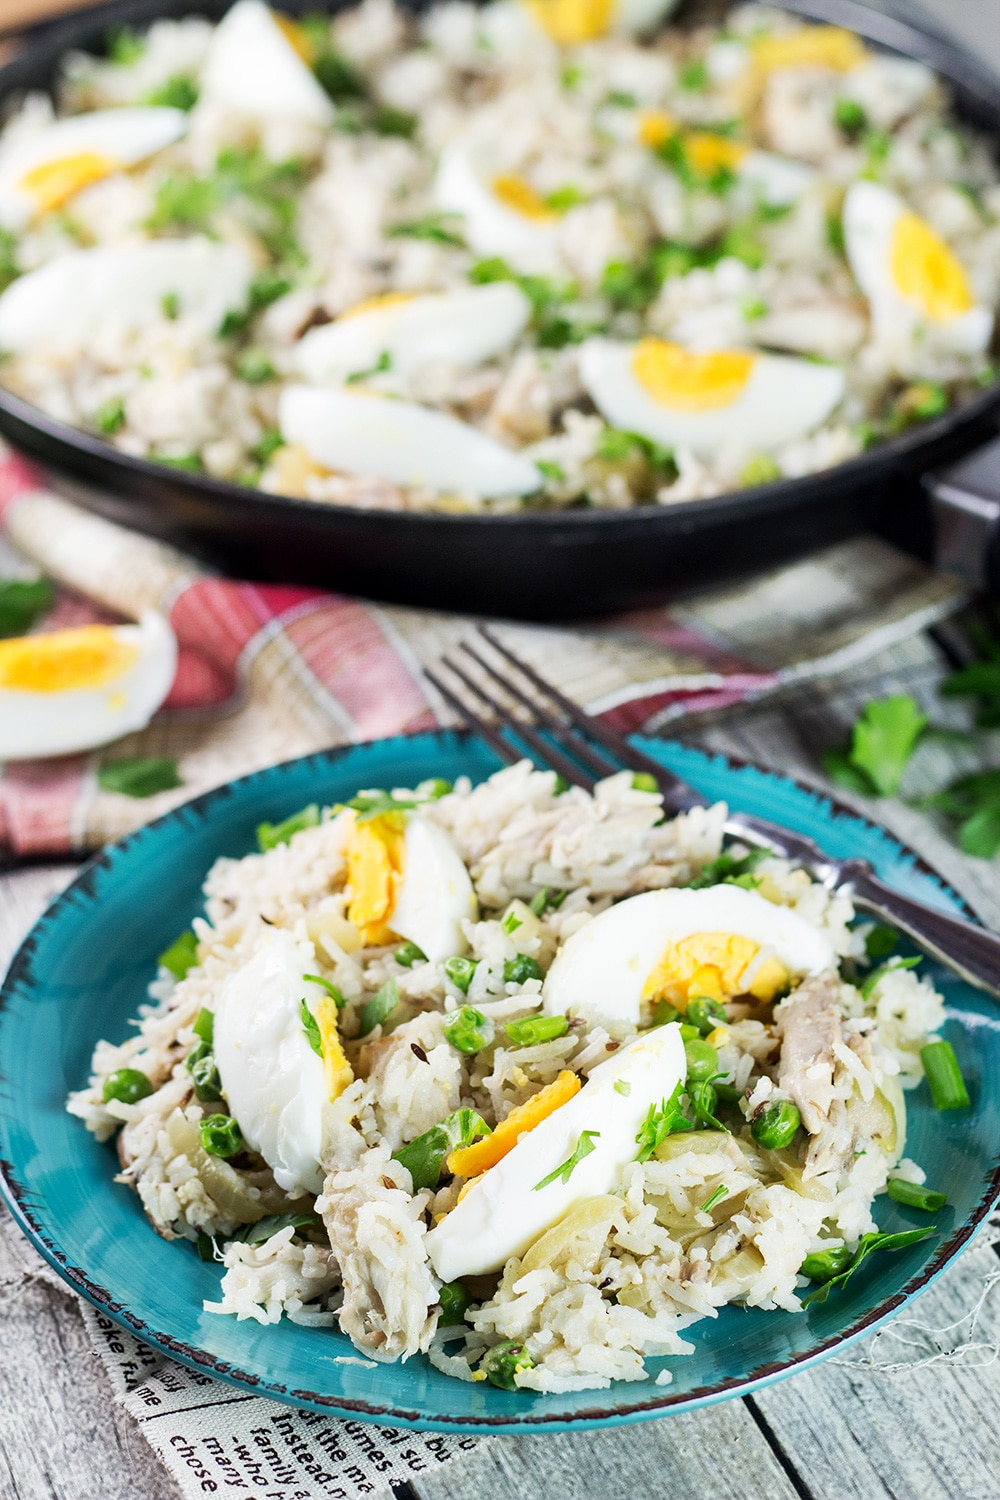 Kedgeree is a traditional British dish usually eaten for breakfast. Smoked fish, spiced rice, peas, onions, and hard-boiled eggs. A true flavor bomb!   cookingtheglobe.com